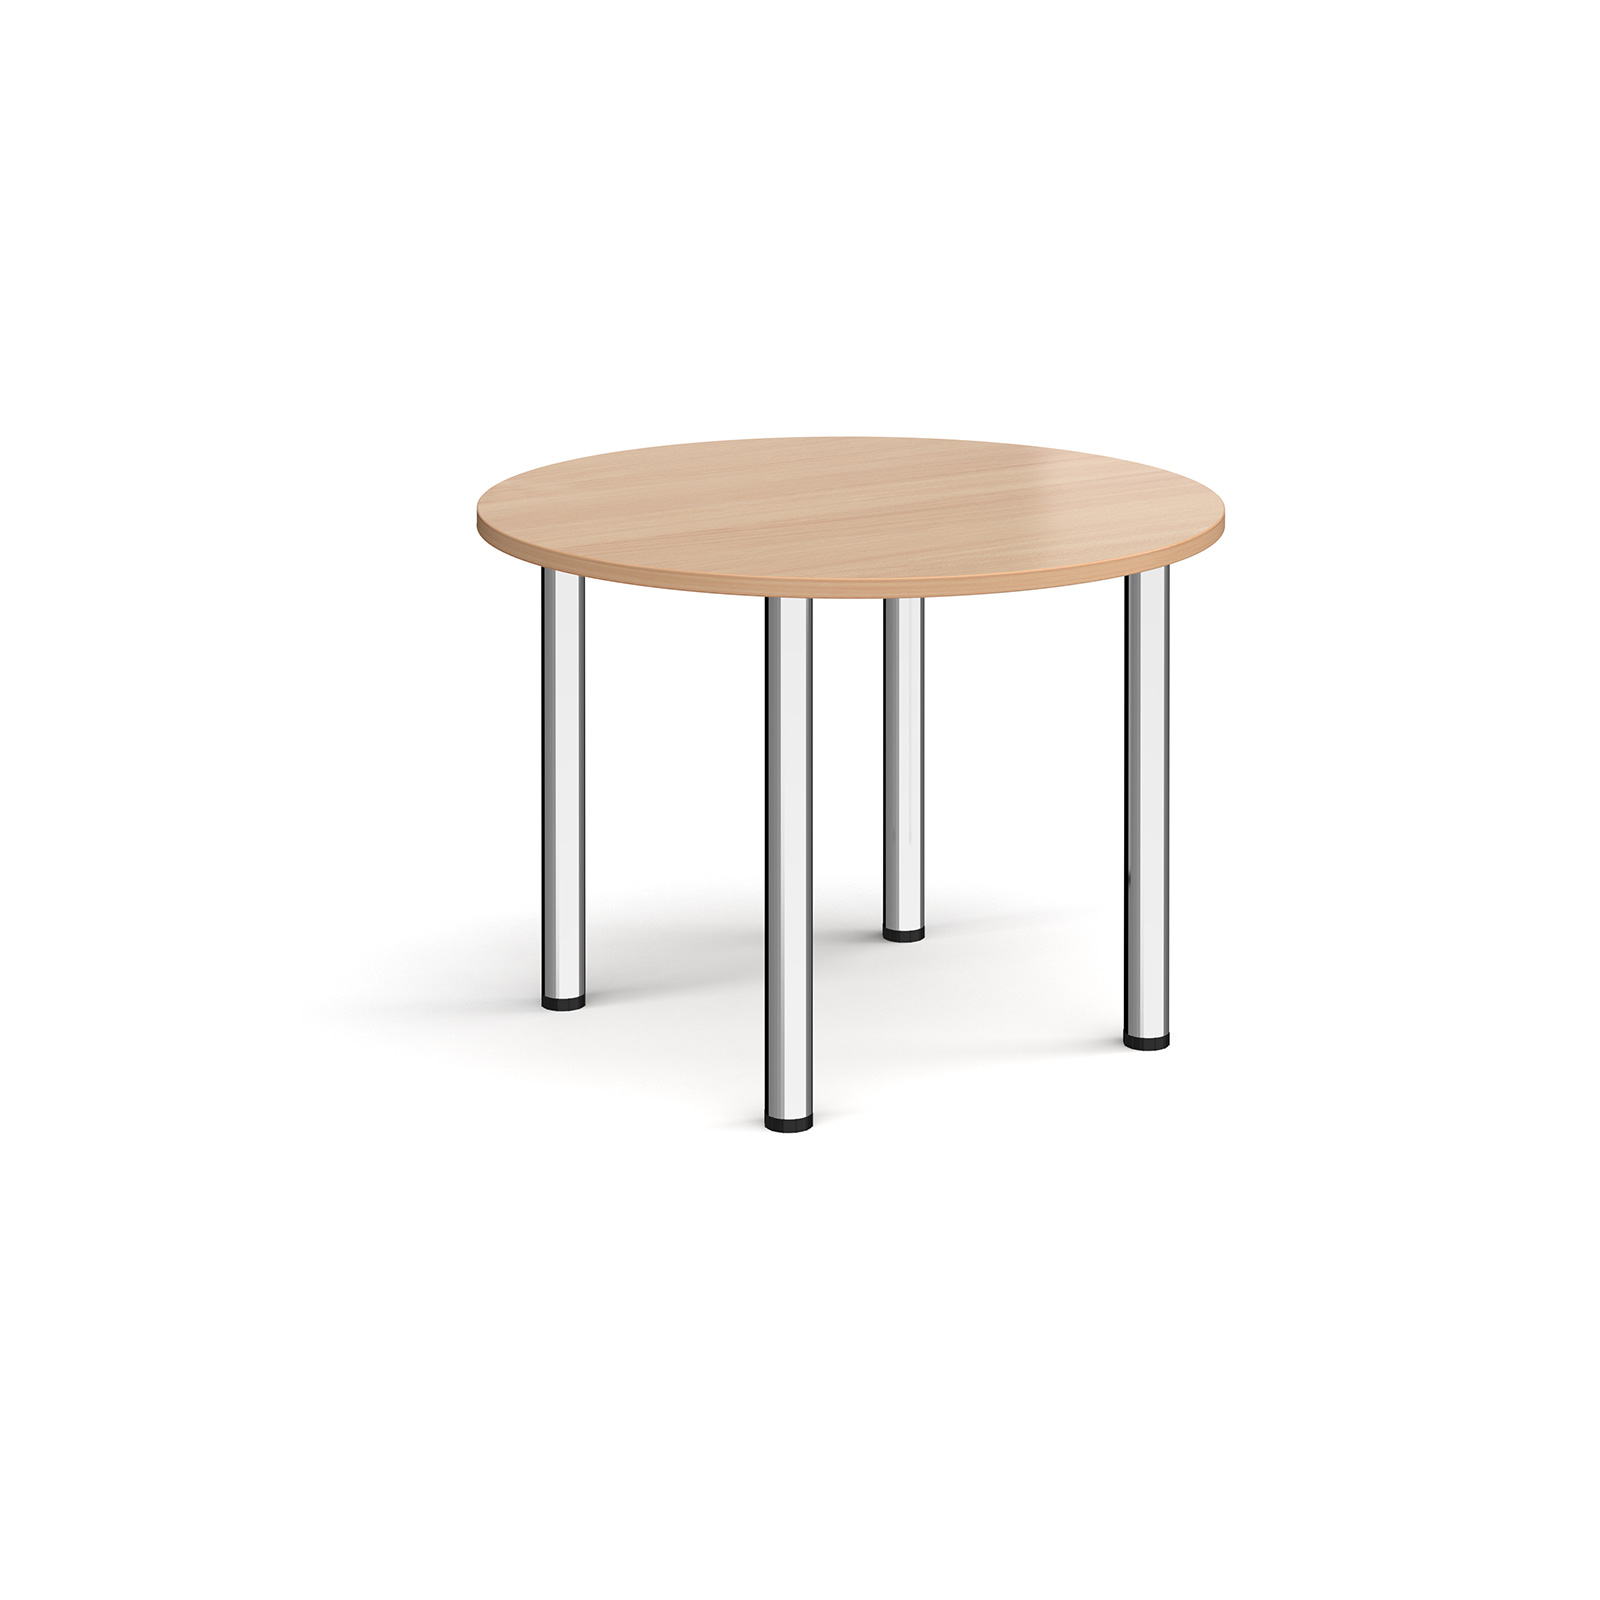 Boardroom / Meeting Circular radial leg meeting table